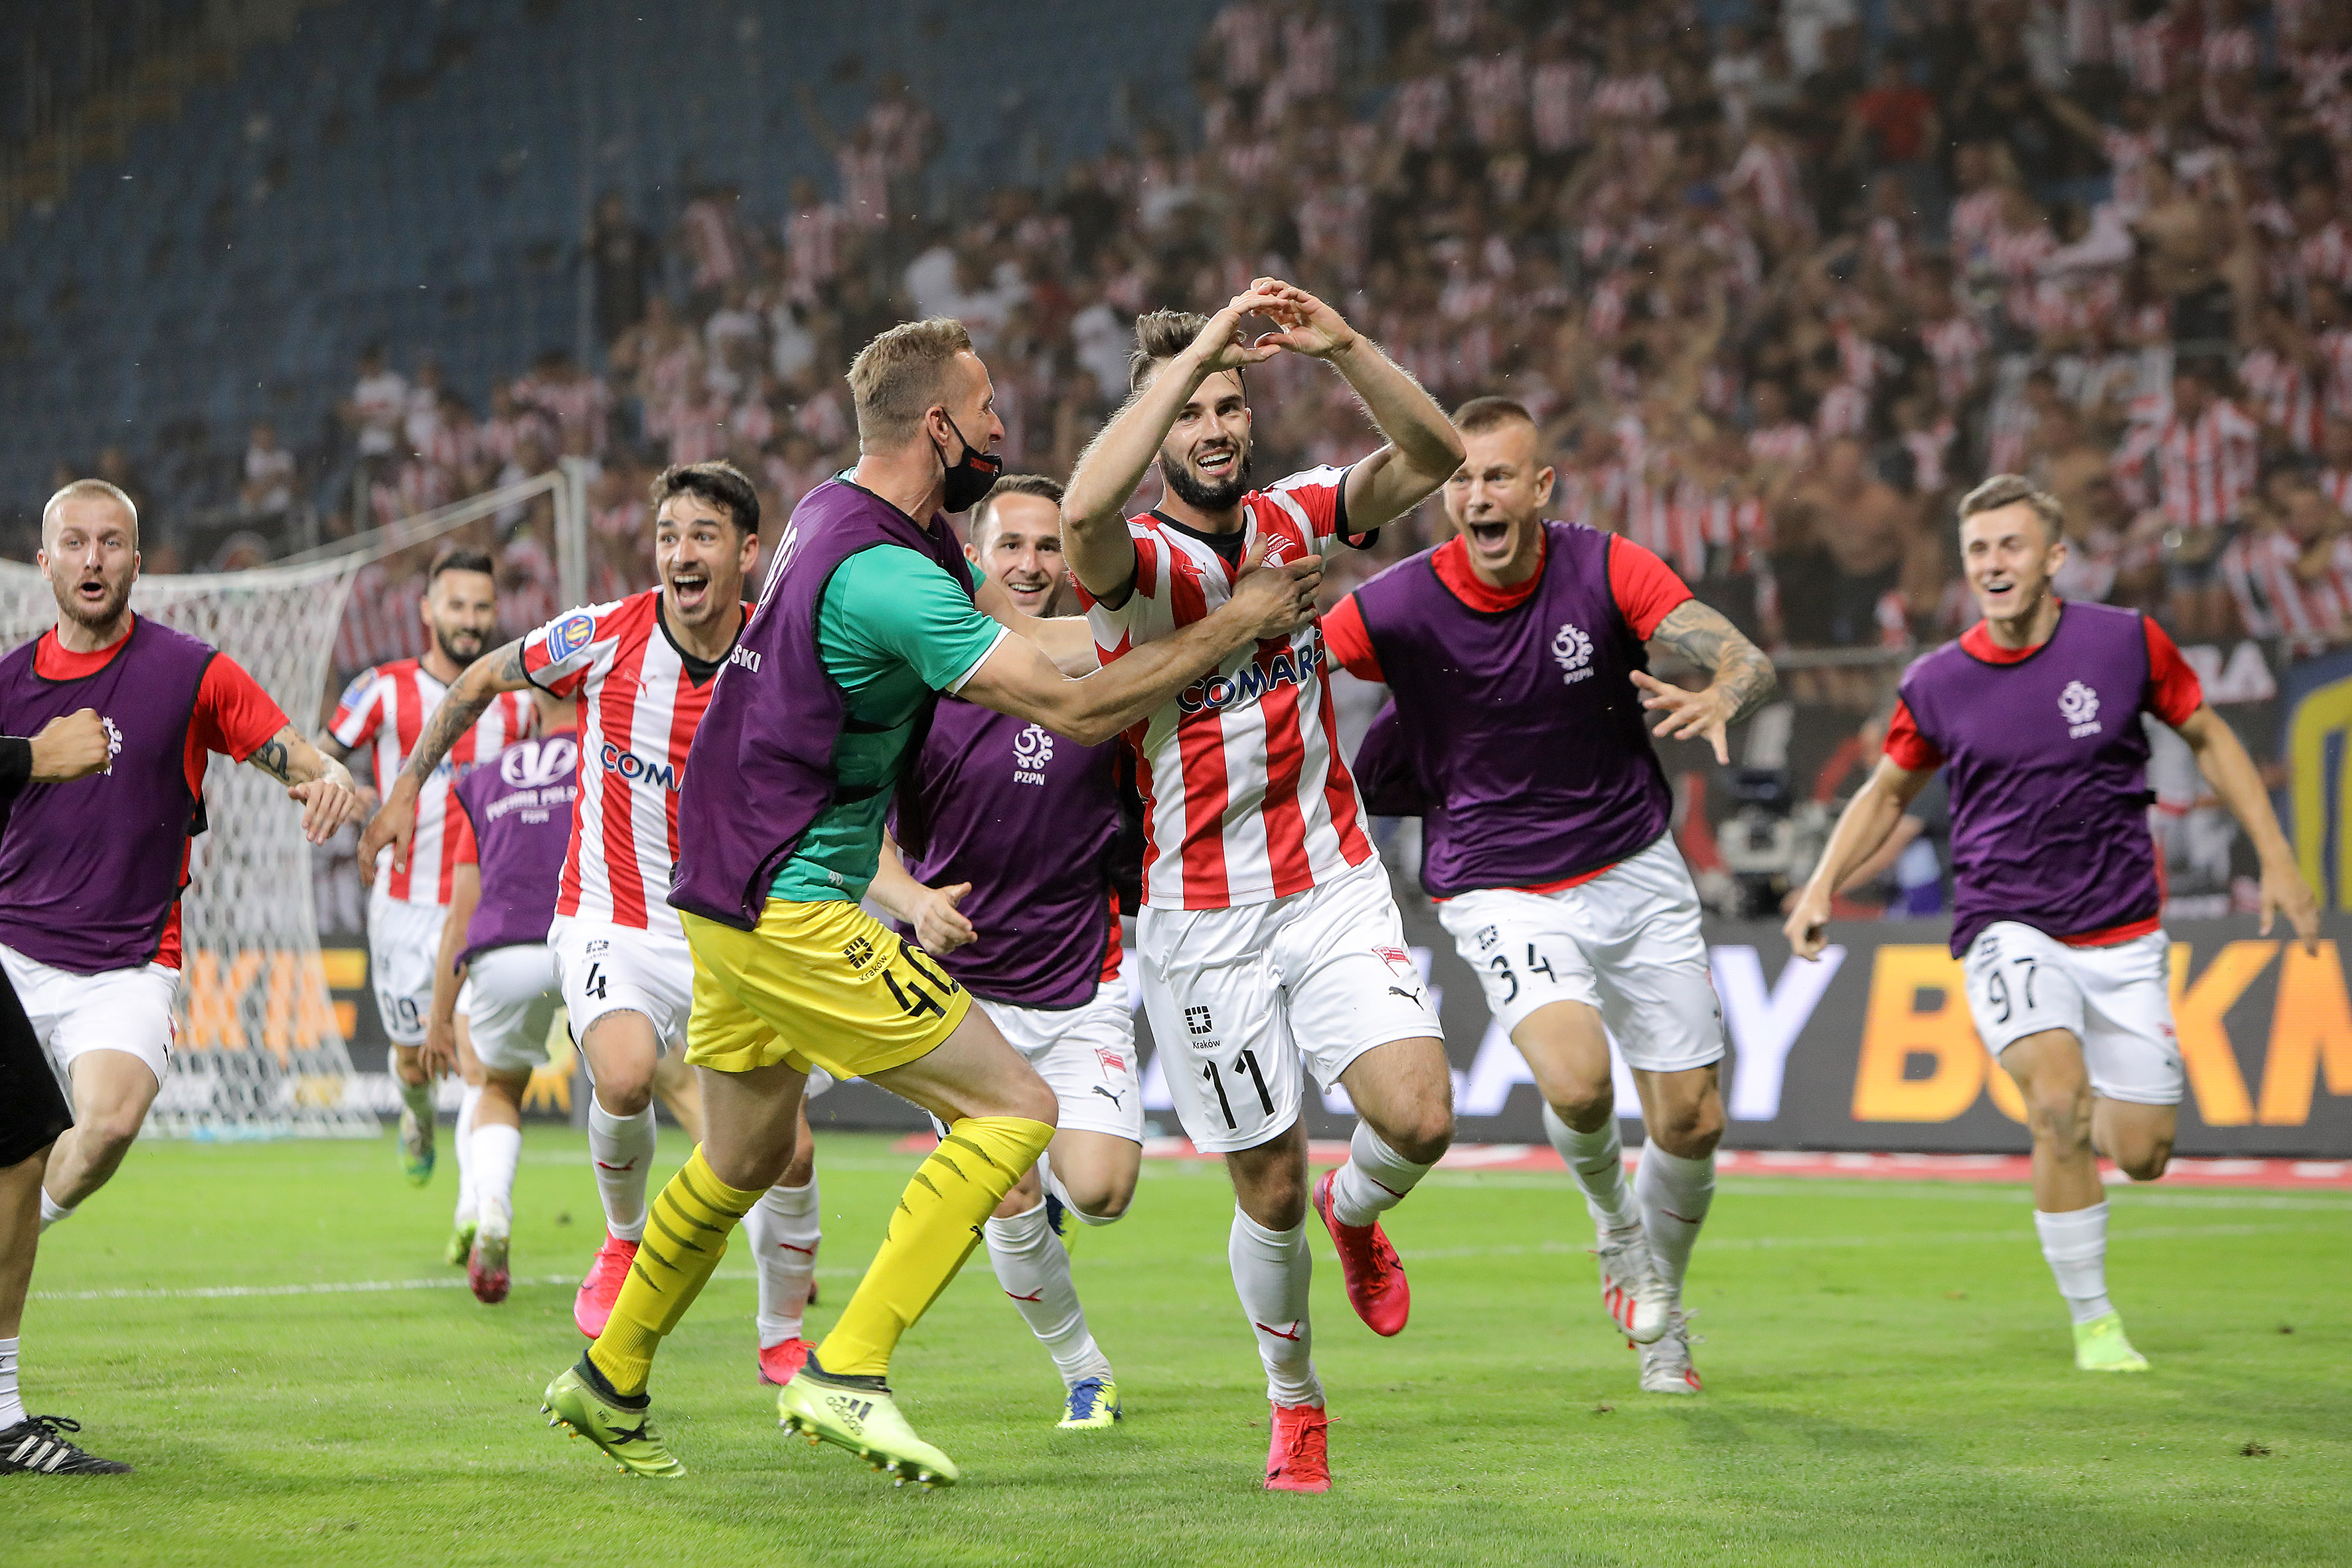 Świt Skolwin is our rival in the Polish Cup's round of 16